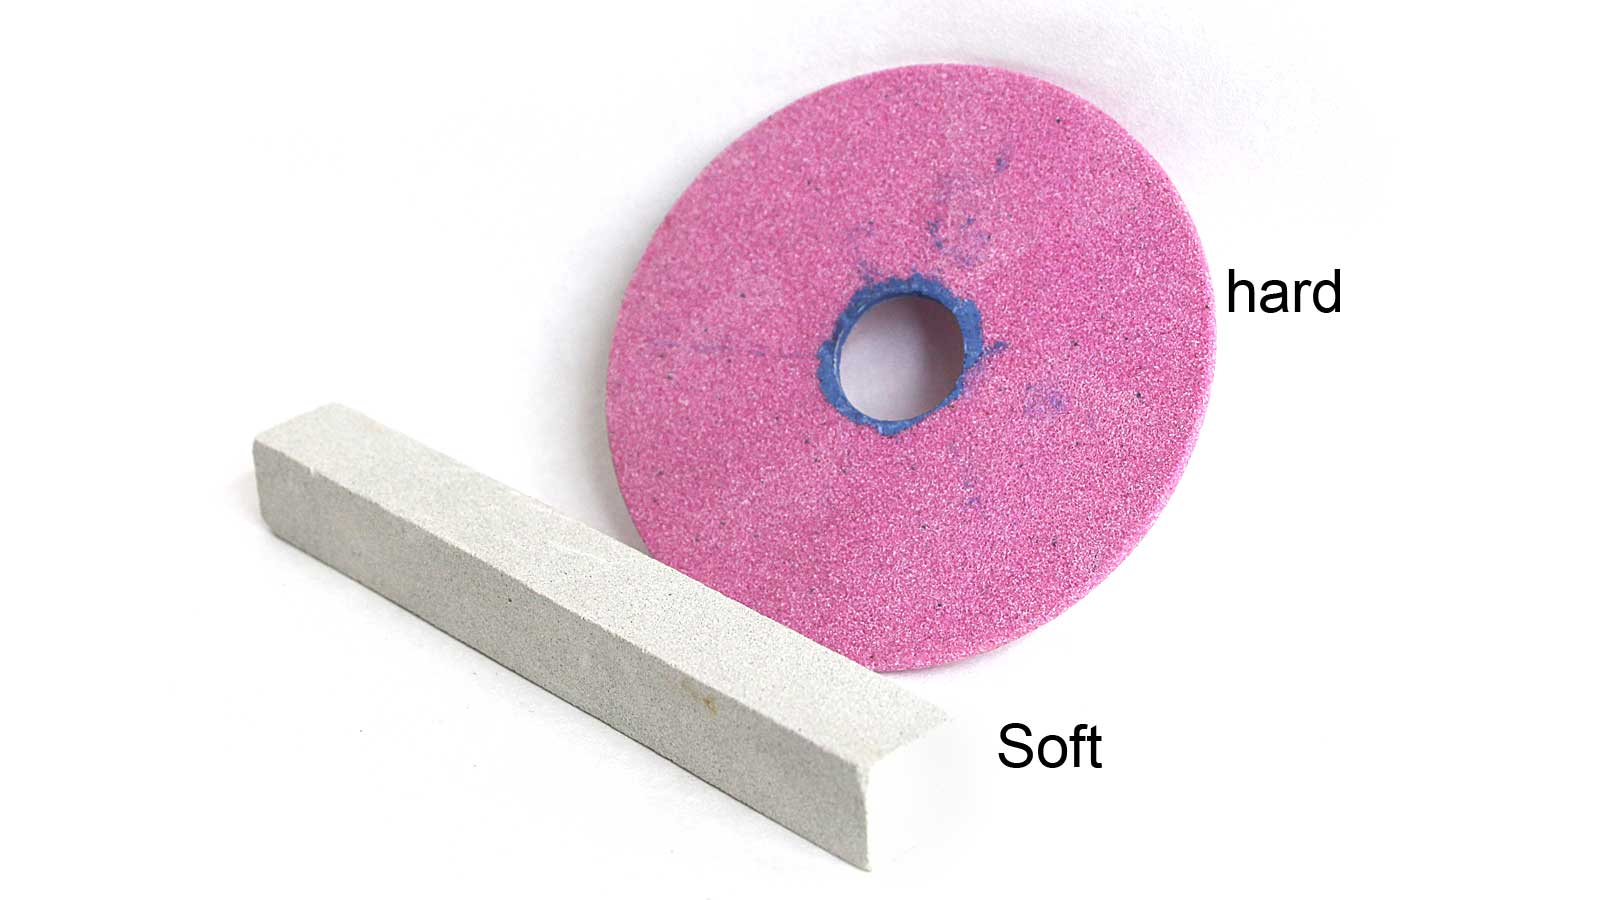 grinding wheels' hardness grad